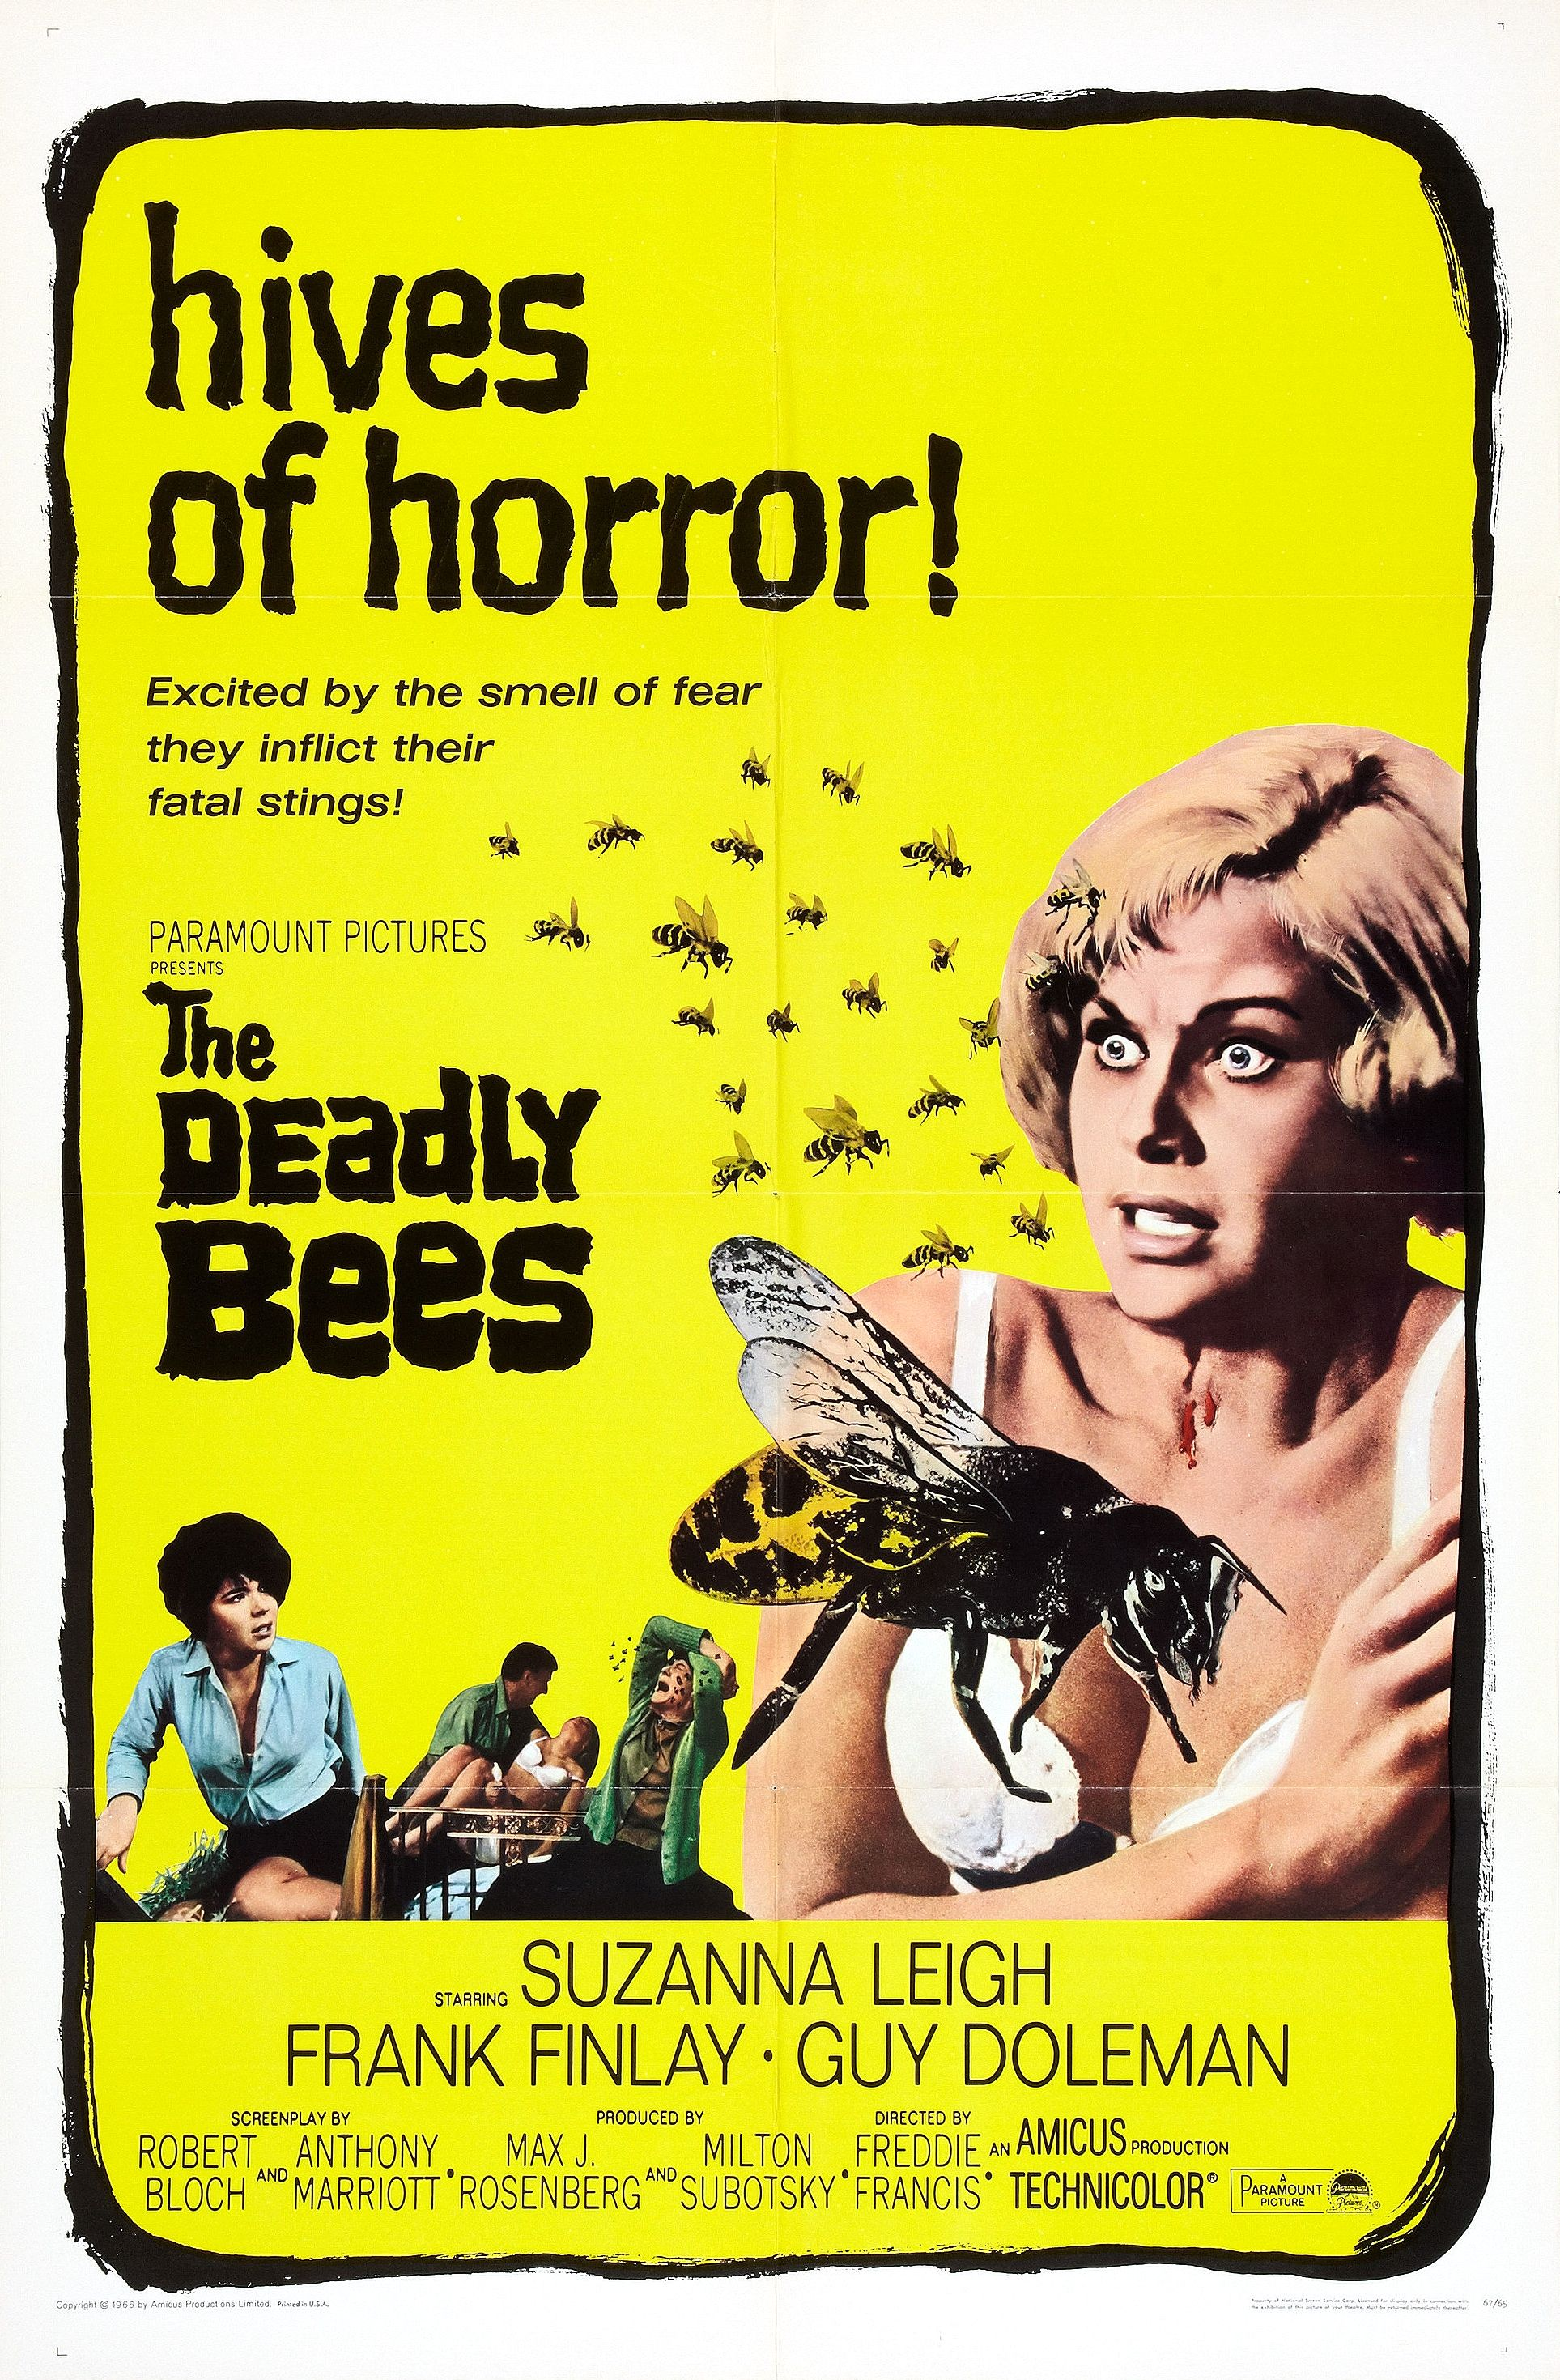 "The lead actress suzanna leigh is shown cowering as bees approach her, the tagline reads ""hives of horror!"